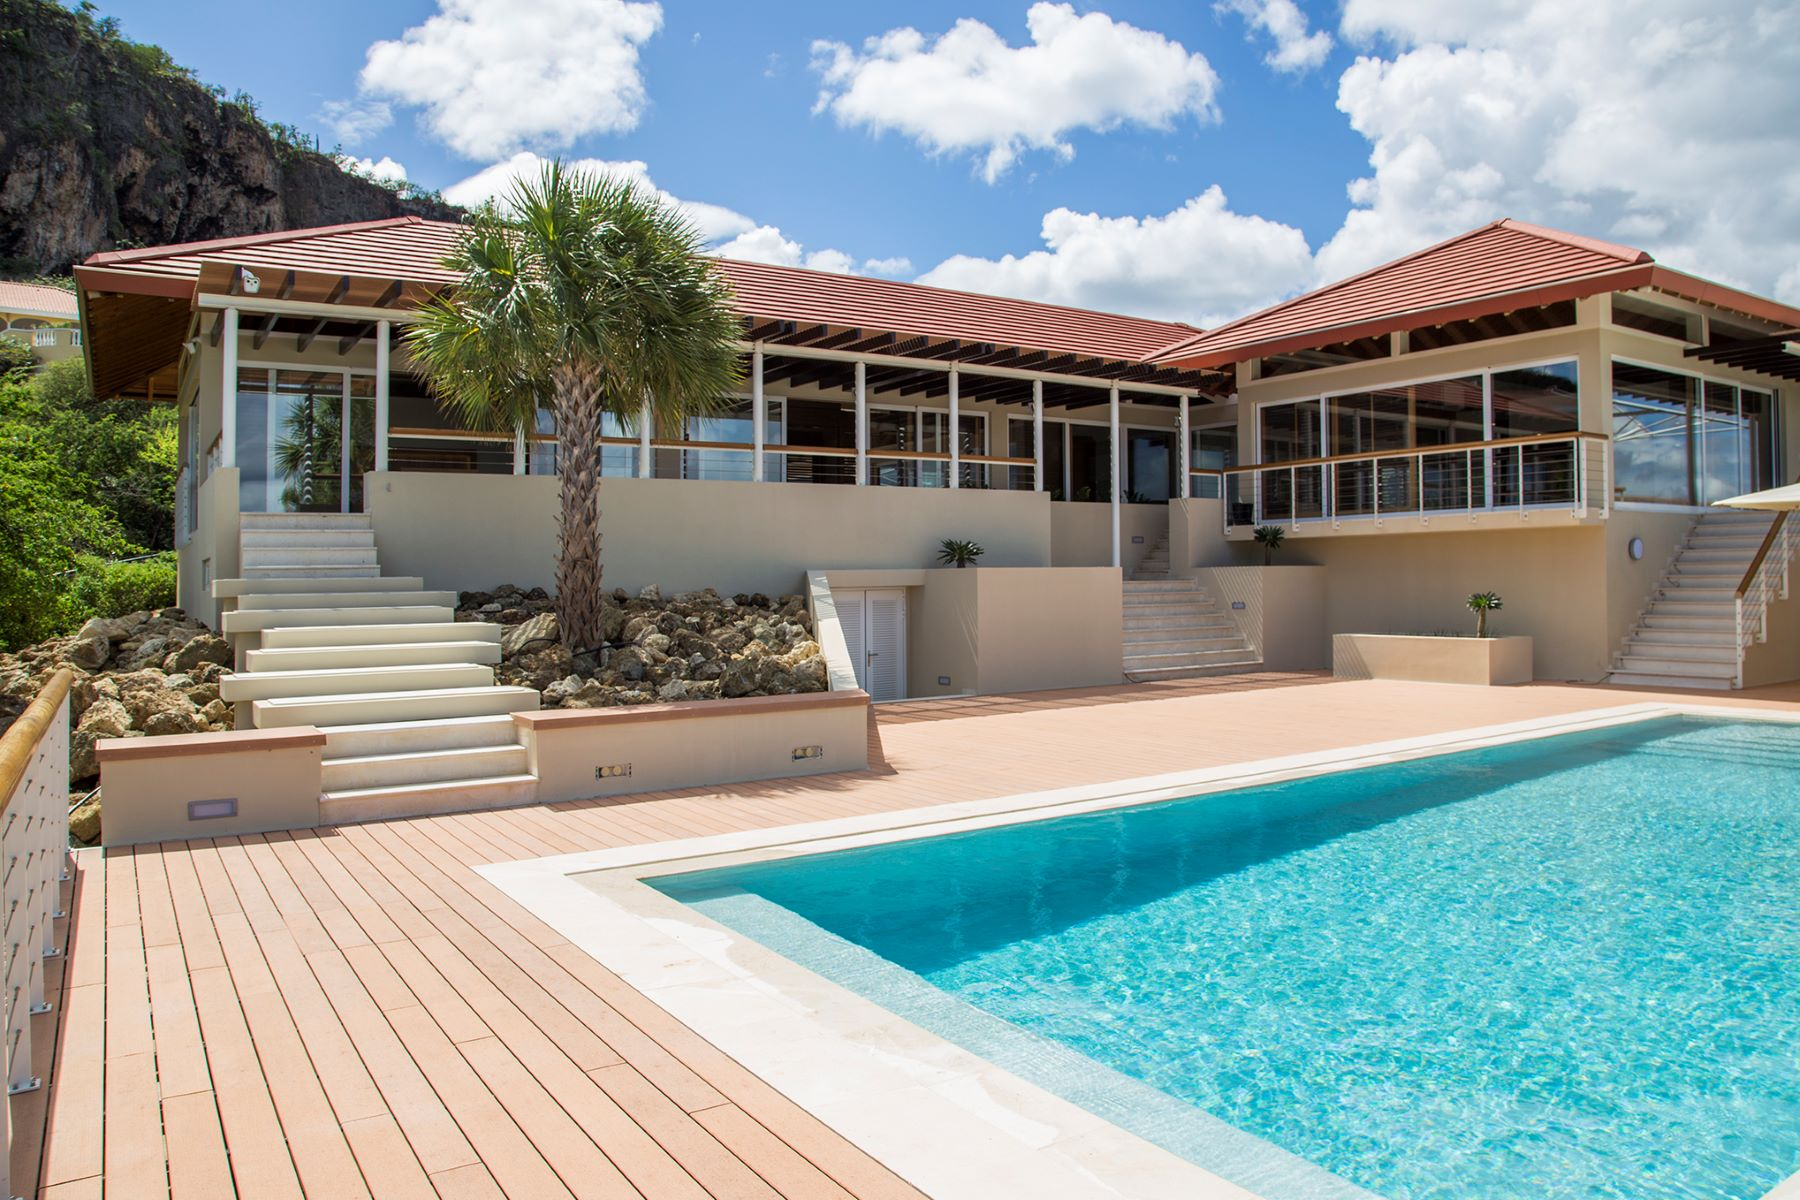 Single Family Home for Sale at Seru Boca Estate Mansion 10 Willemstad, Curacao